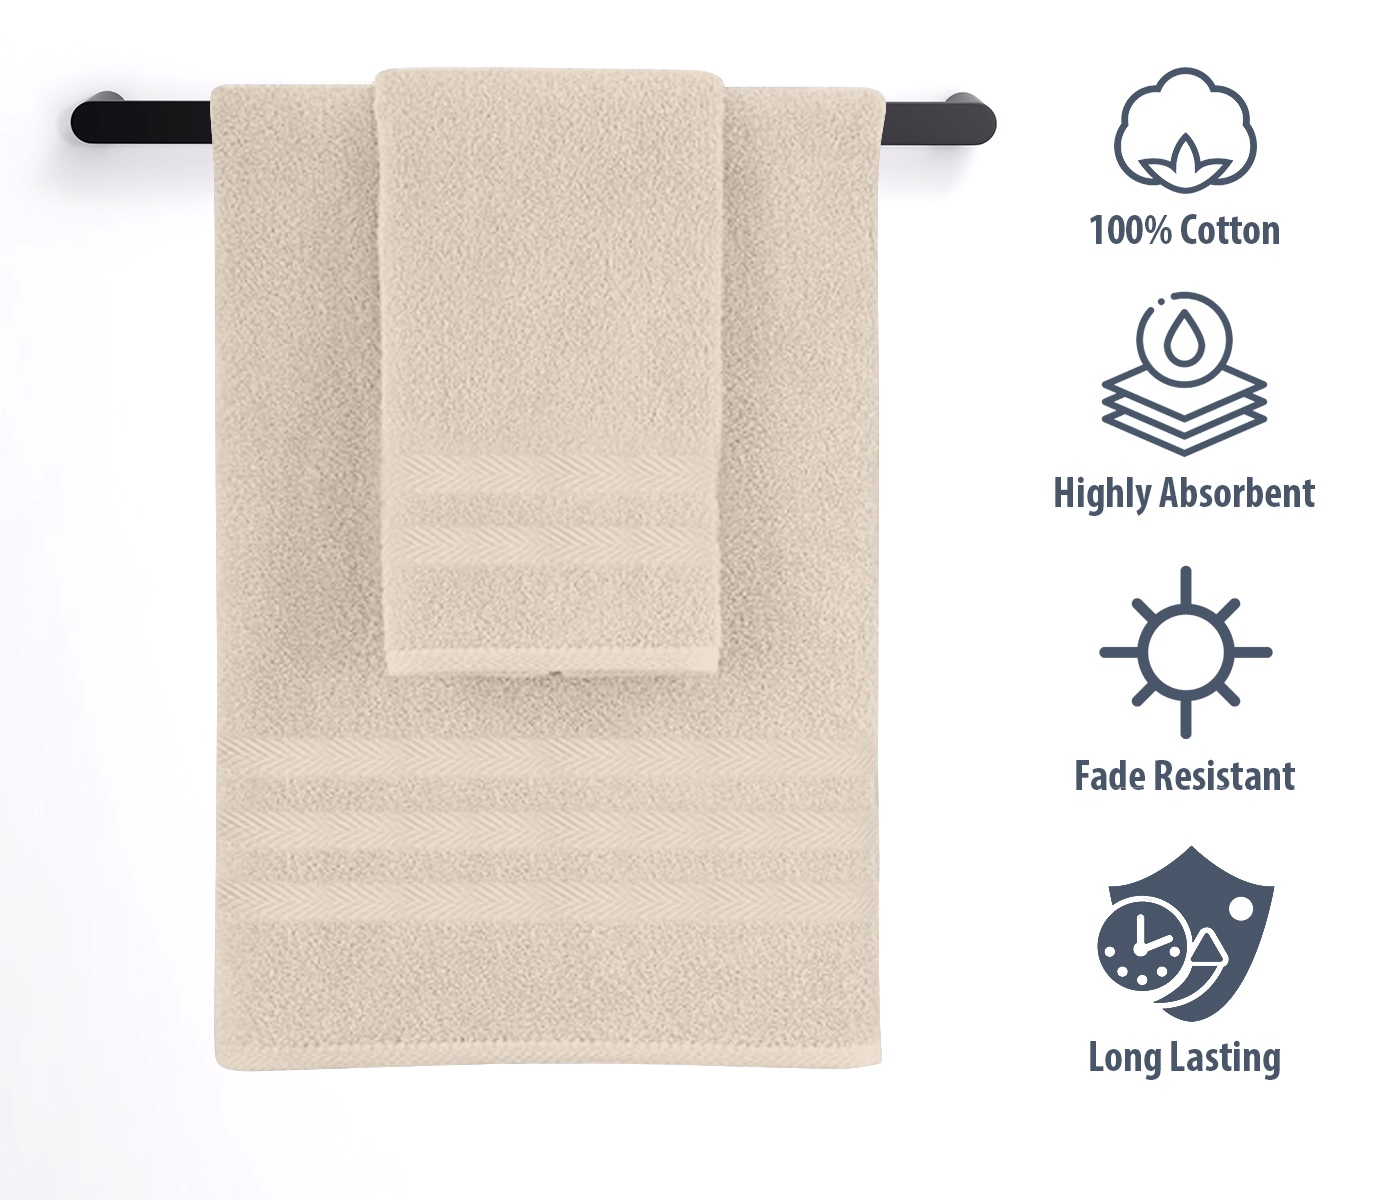 Gray 2 Pack Cotton Hand Towels Set,Thickened /& Soft Hotel Bathroom Towels,Durable and Super Absorbent Face Towels for Daily Use Such,13.7x29.5 Inch